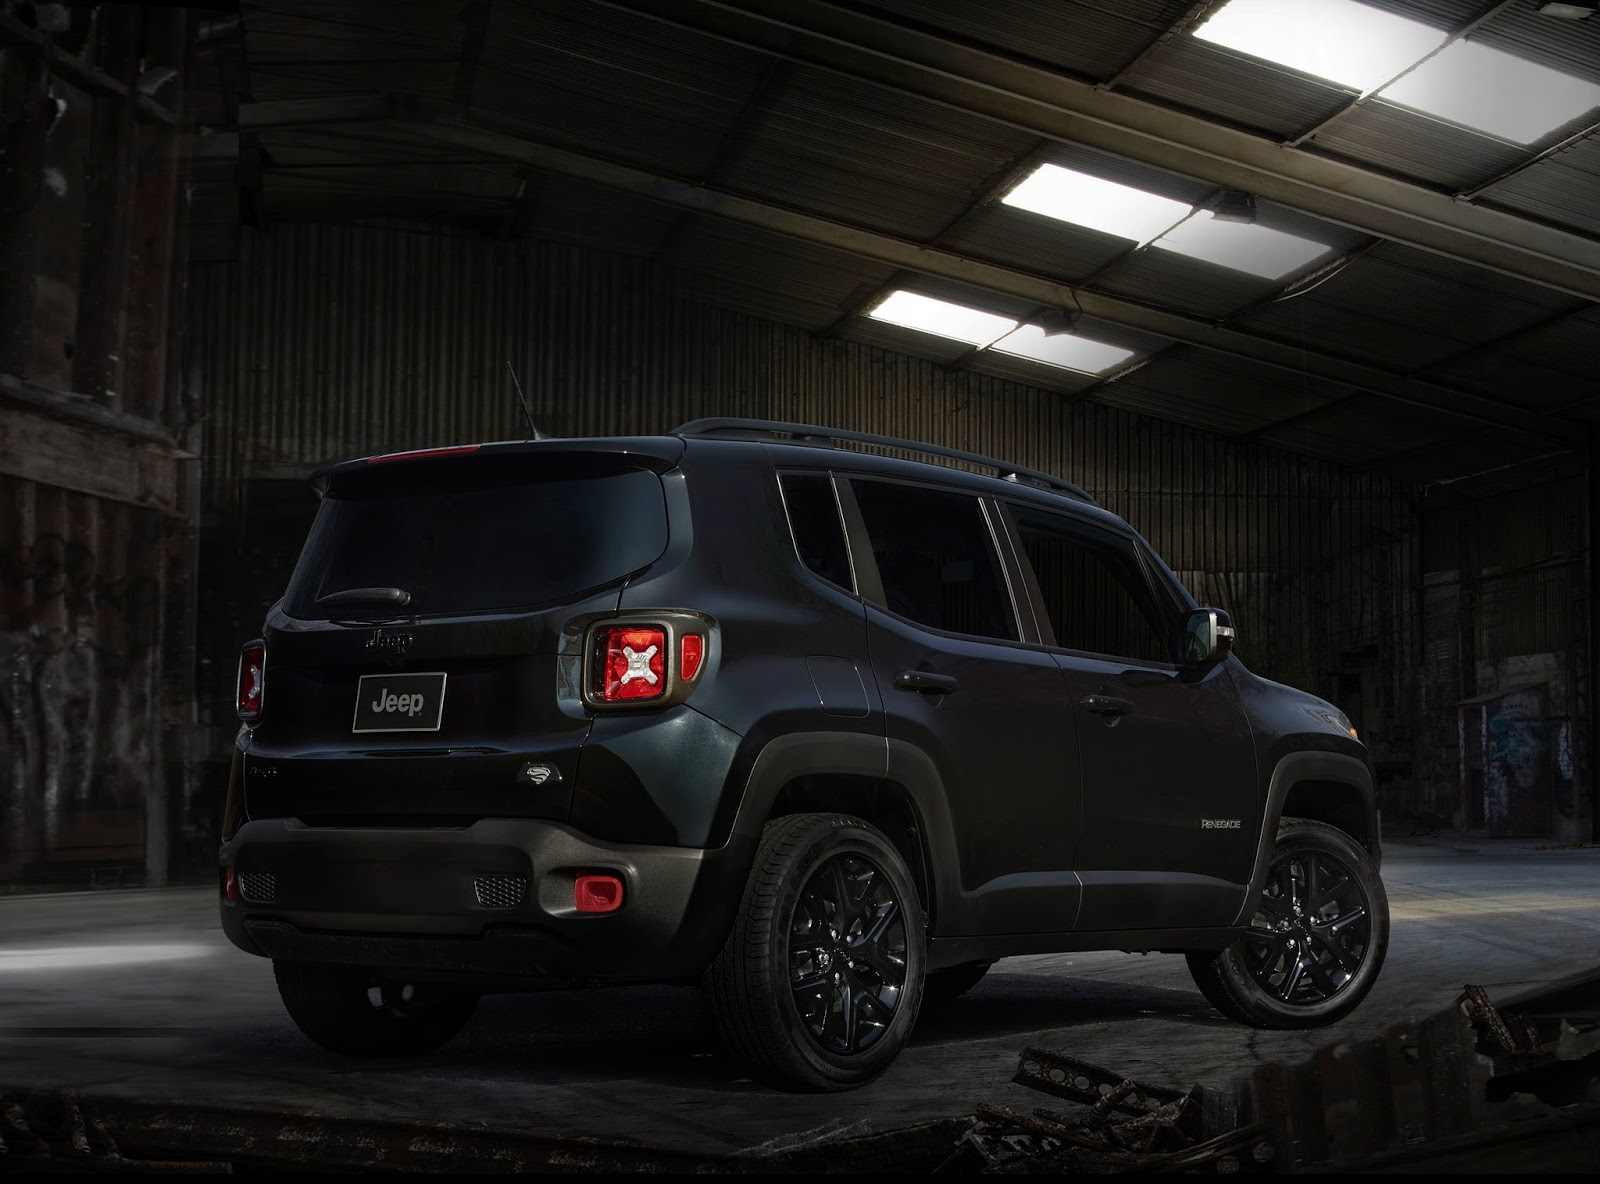 2016 jeep renegade dawn of justice 003 1 1 1 Jeep Renegade Justice! Ένα Jeep για ήρωες!